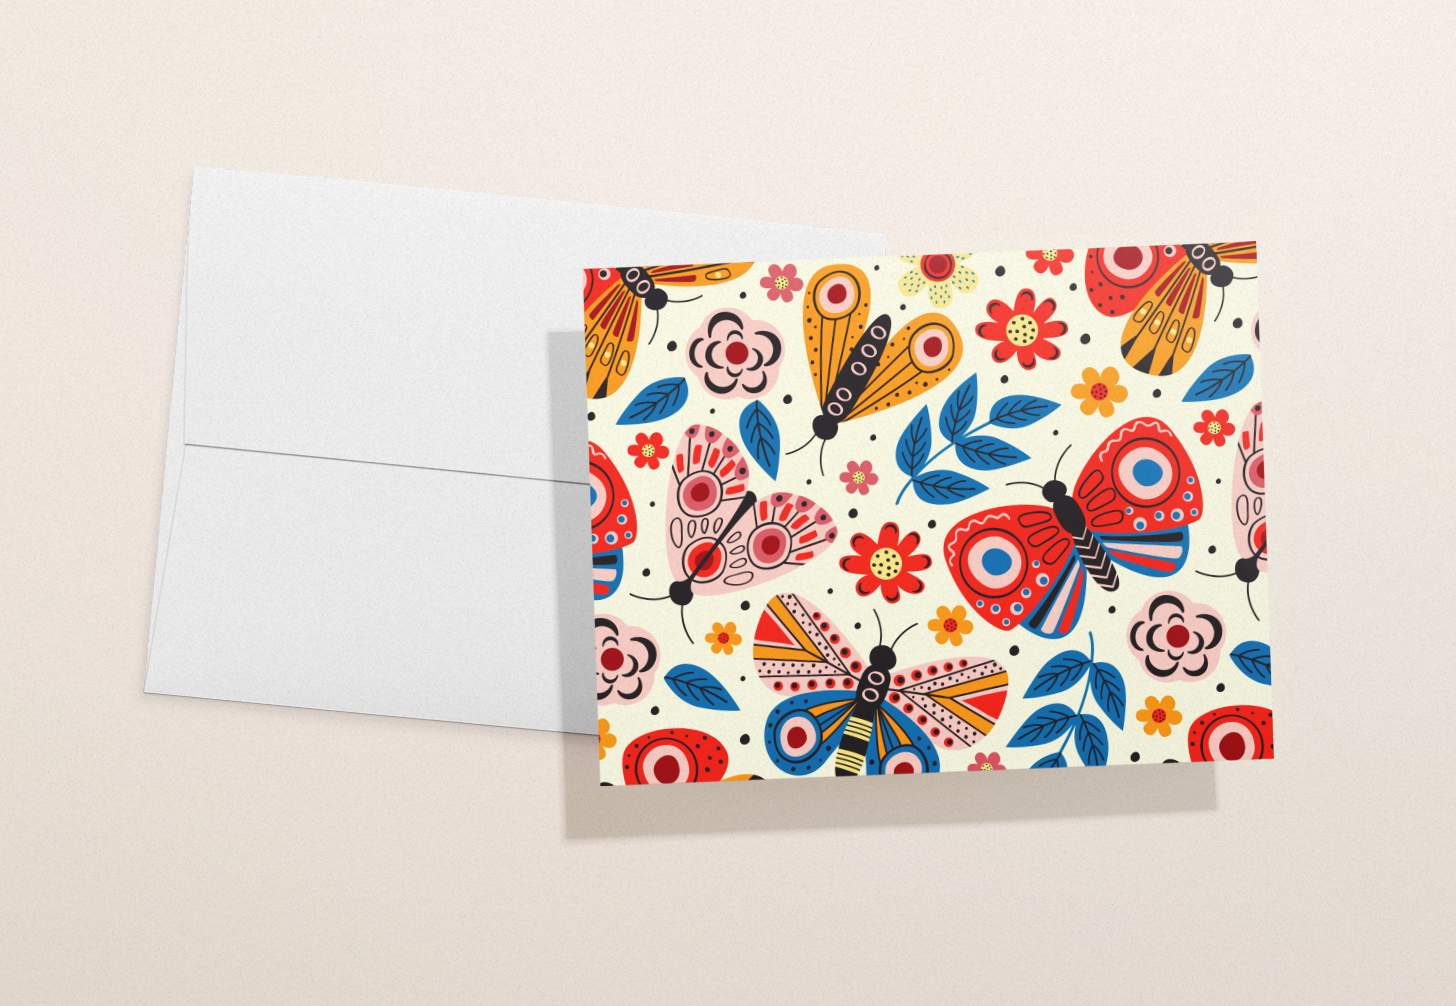 Multicolored butterfly design on white card with white envelope